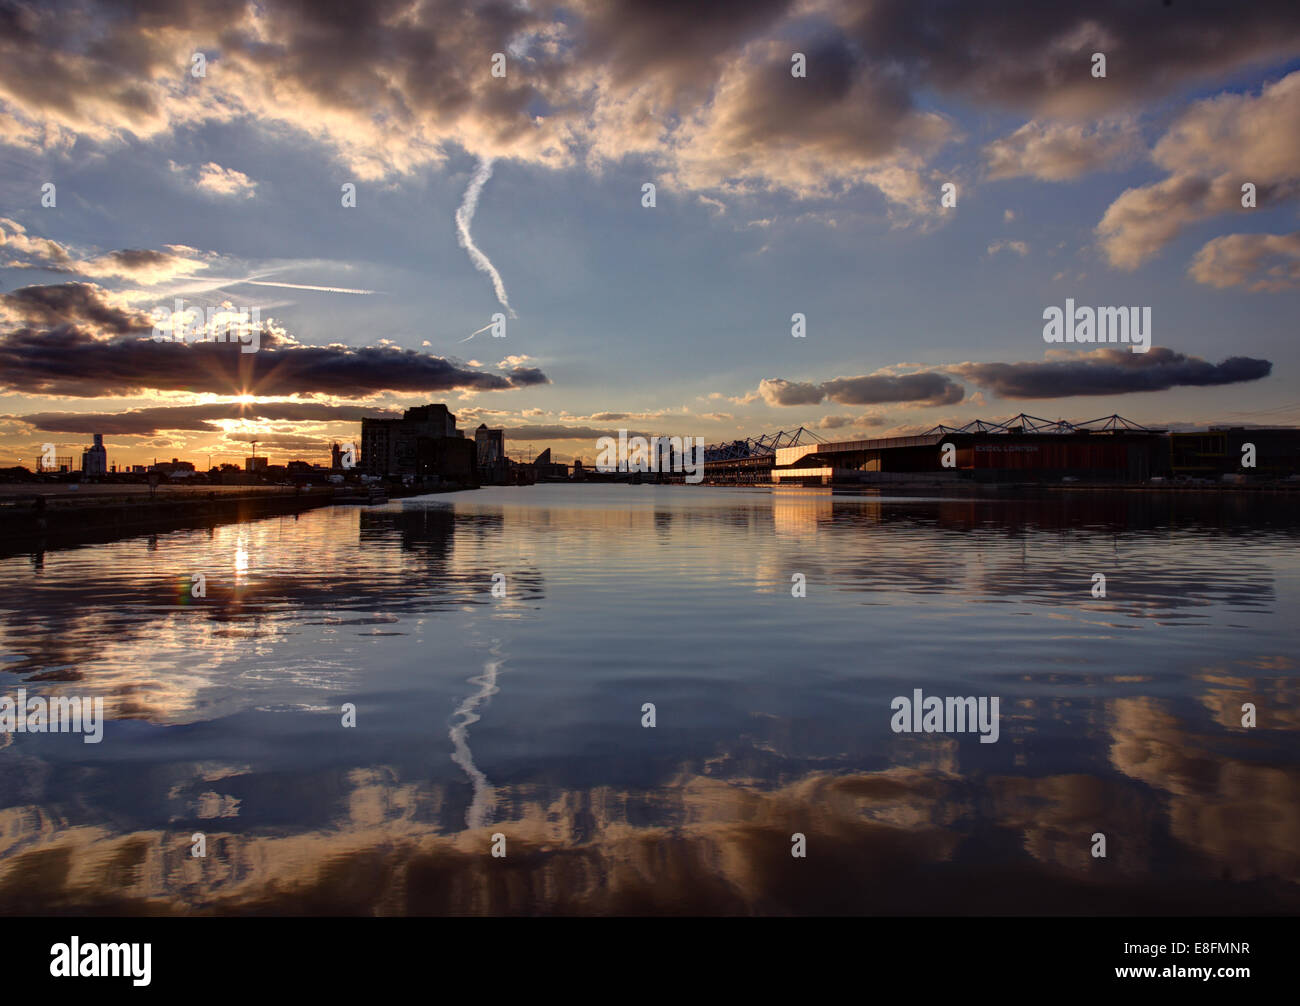 United Kingdom, England, London, Royal Victoria Docks at Canary Wharf - Stock Image